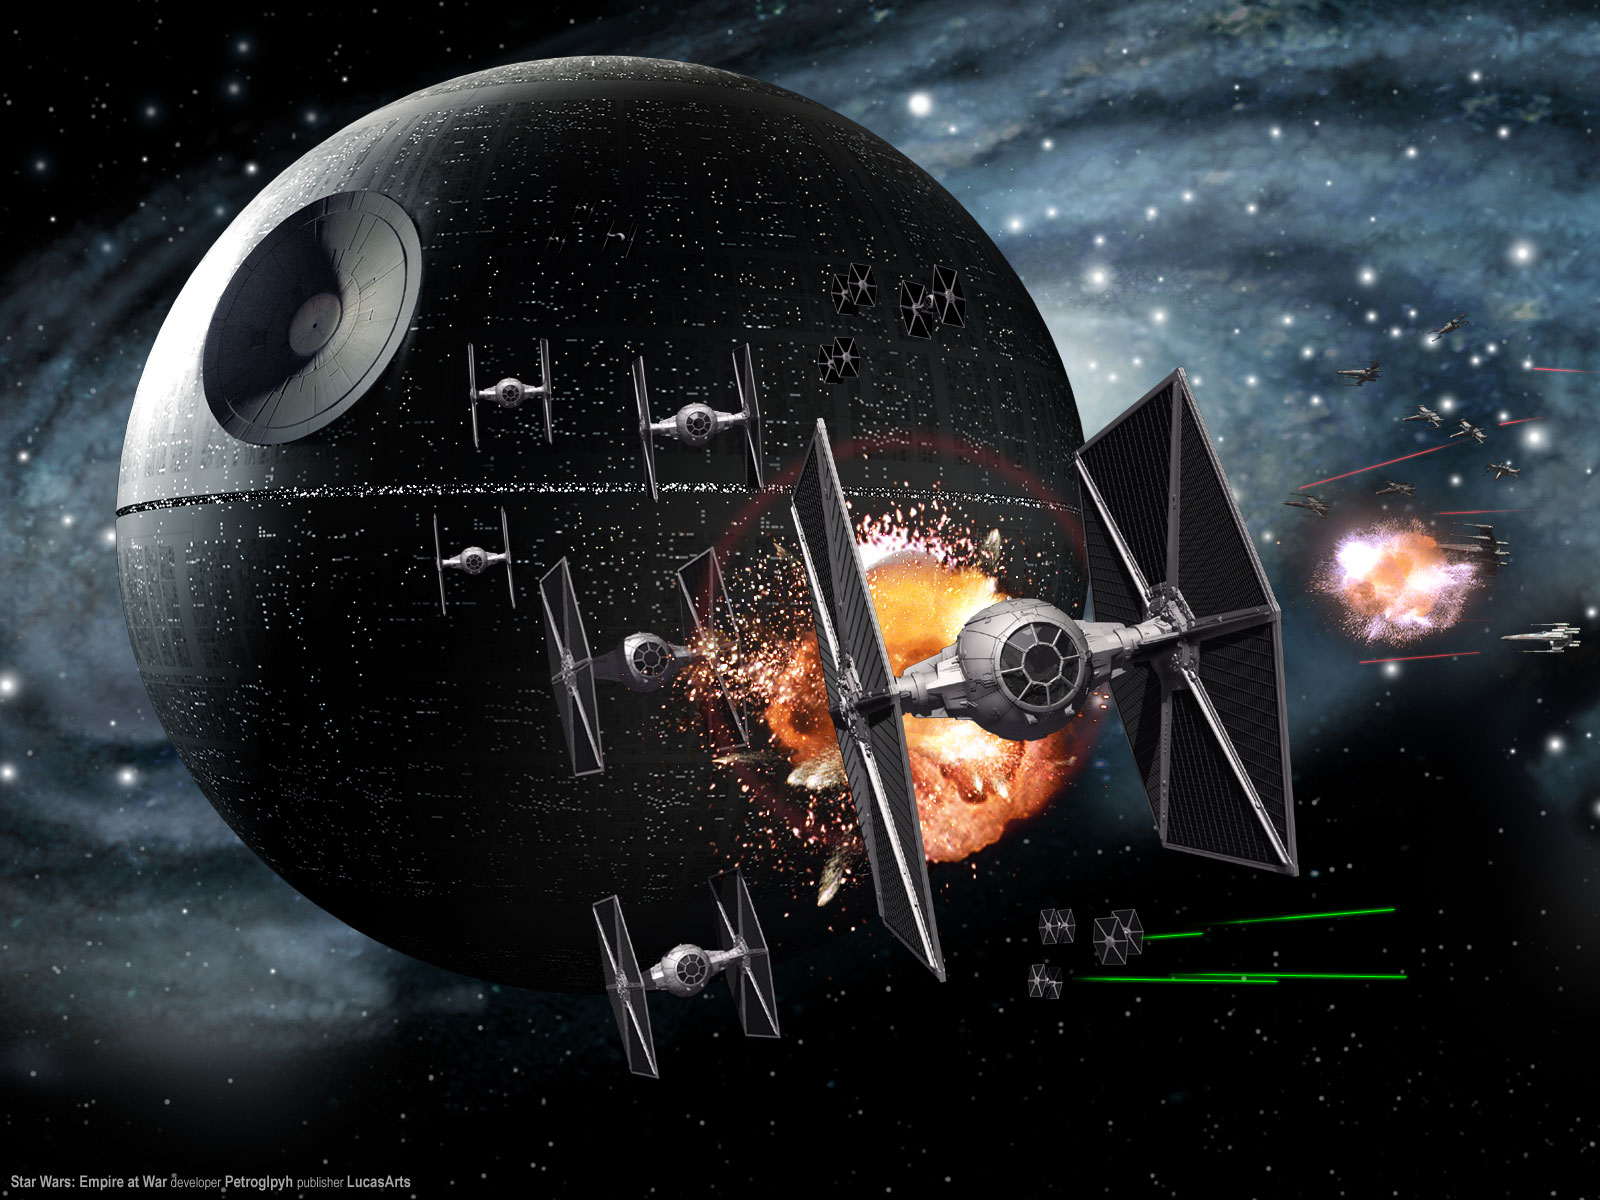 50 hd star wars - photo #17